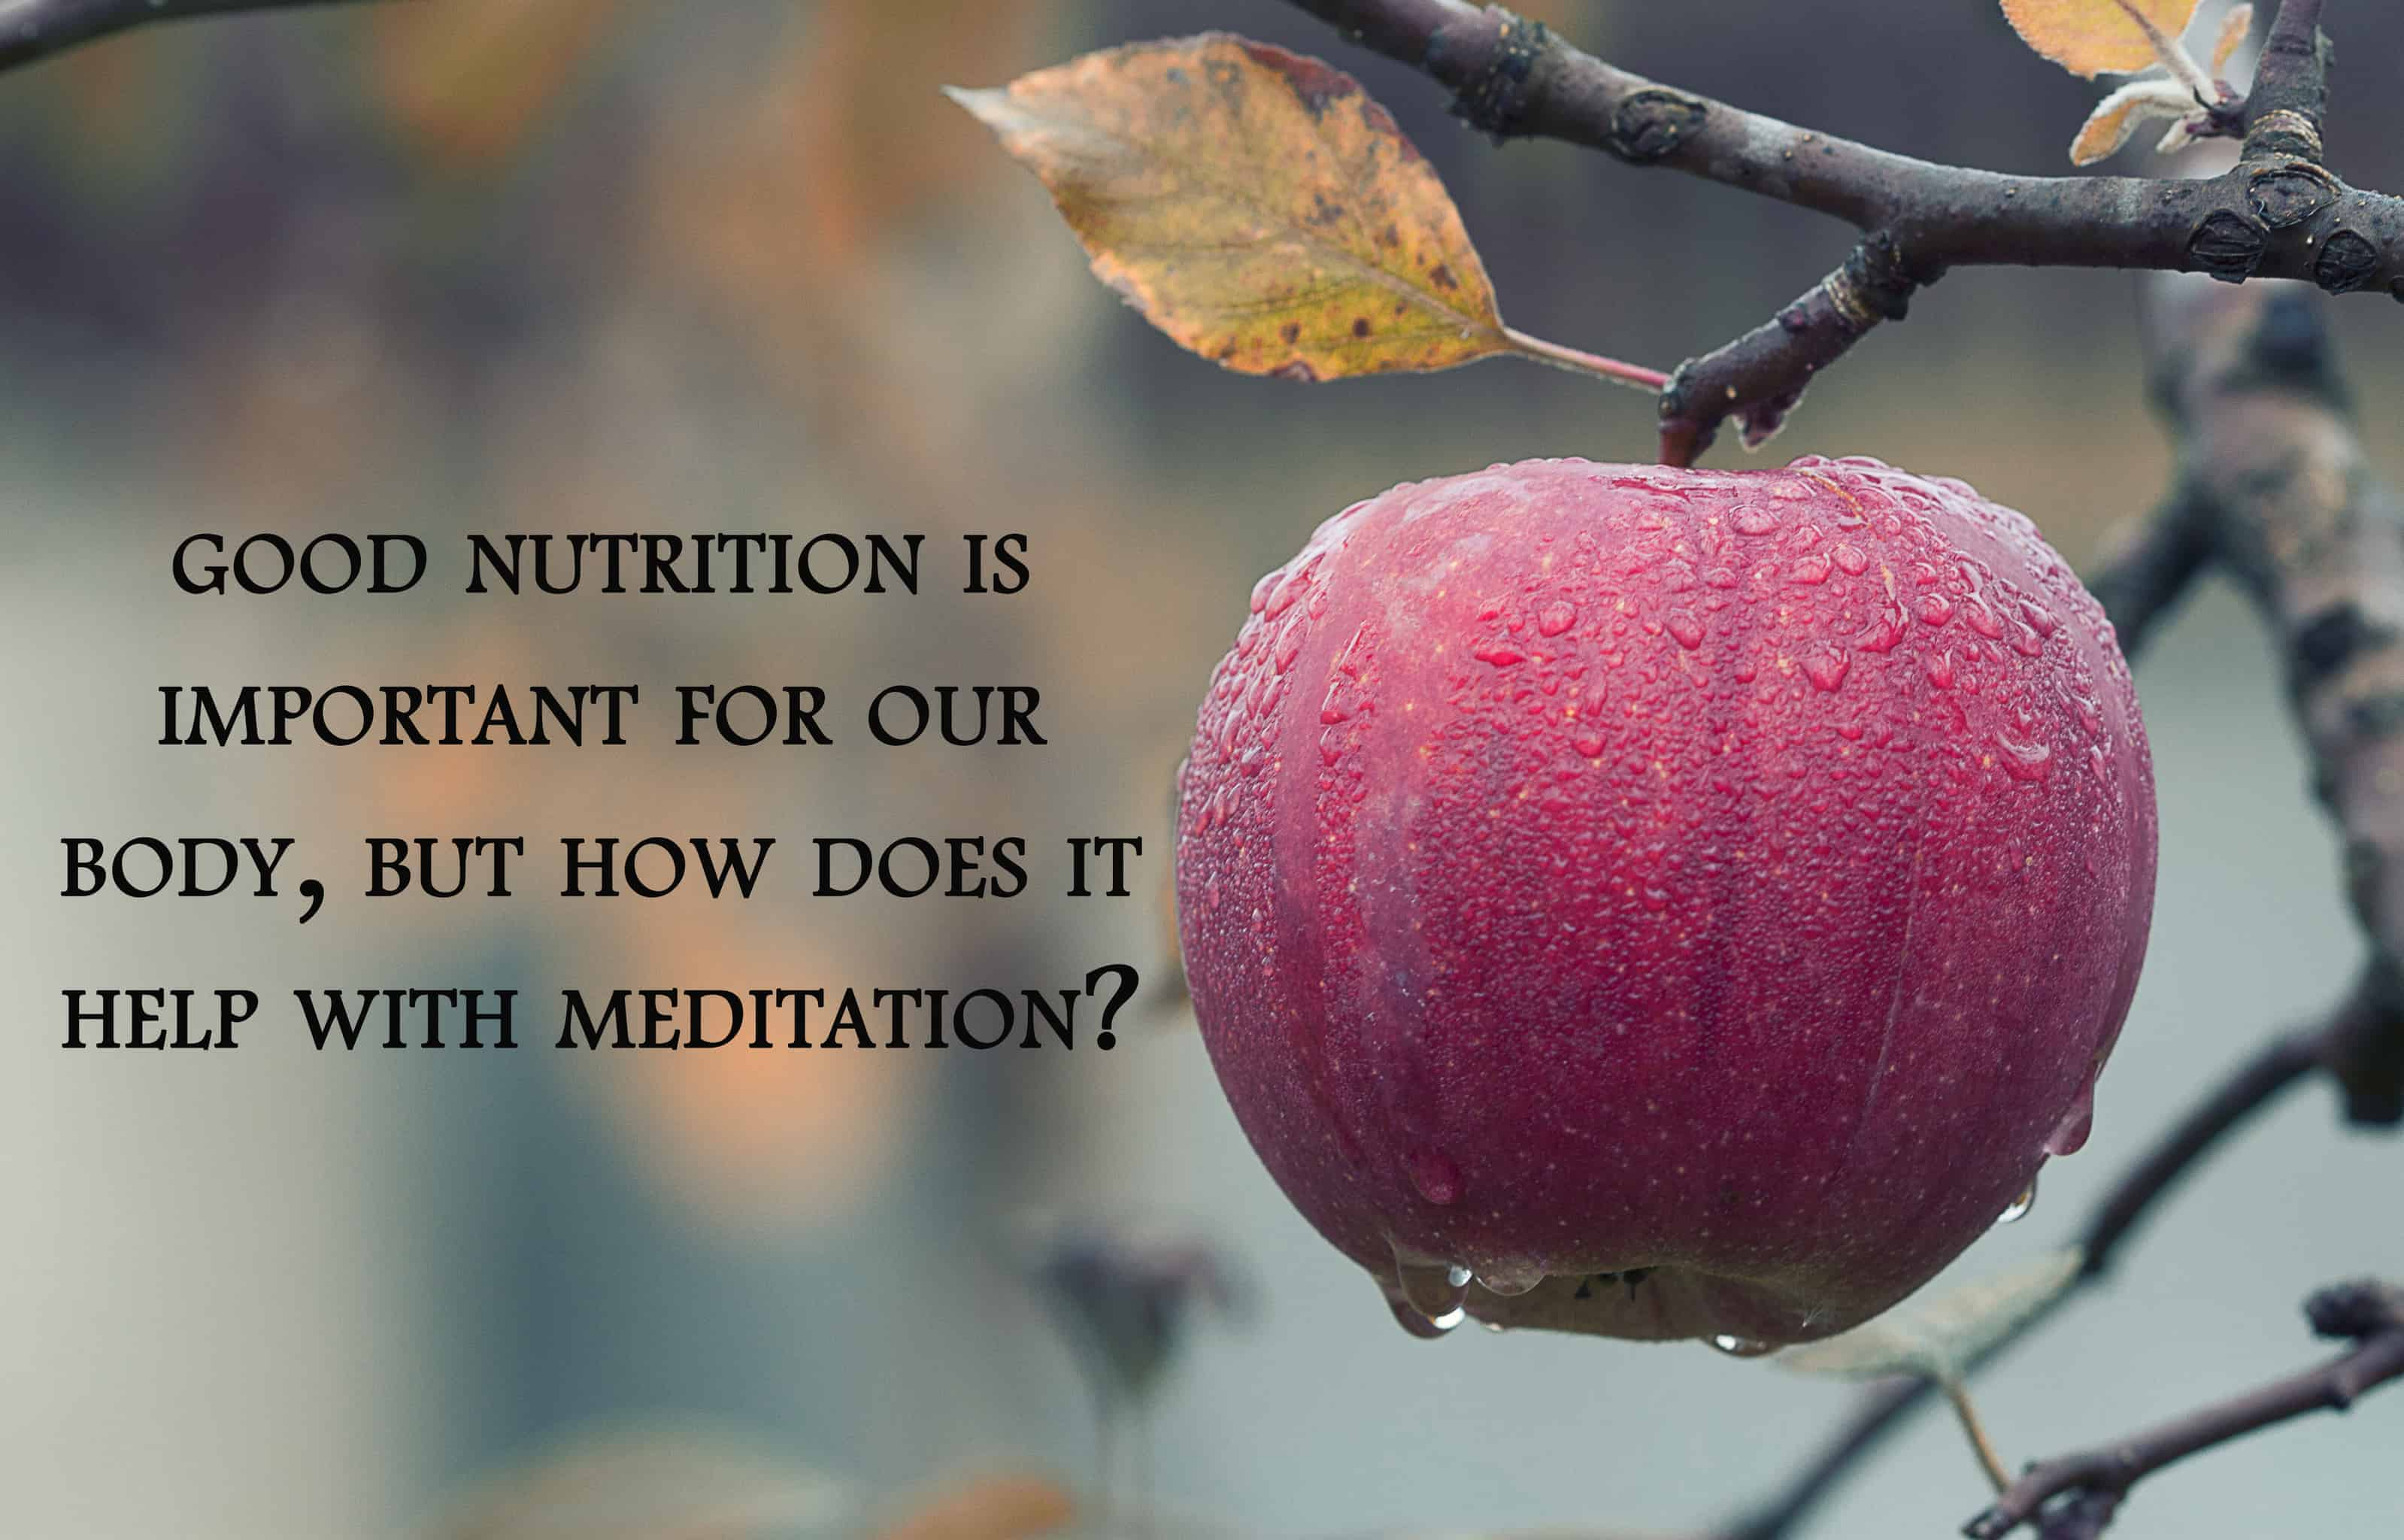 Learn more about how nutrition can impact the effectiveness of your meditation http://www.saradachir